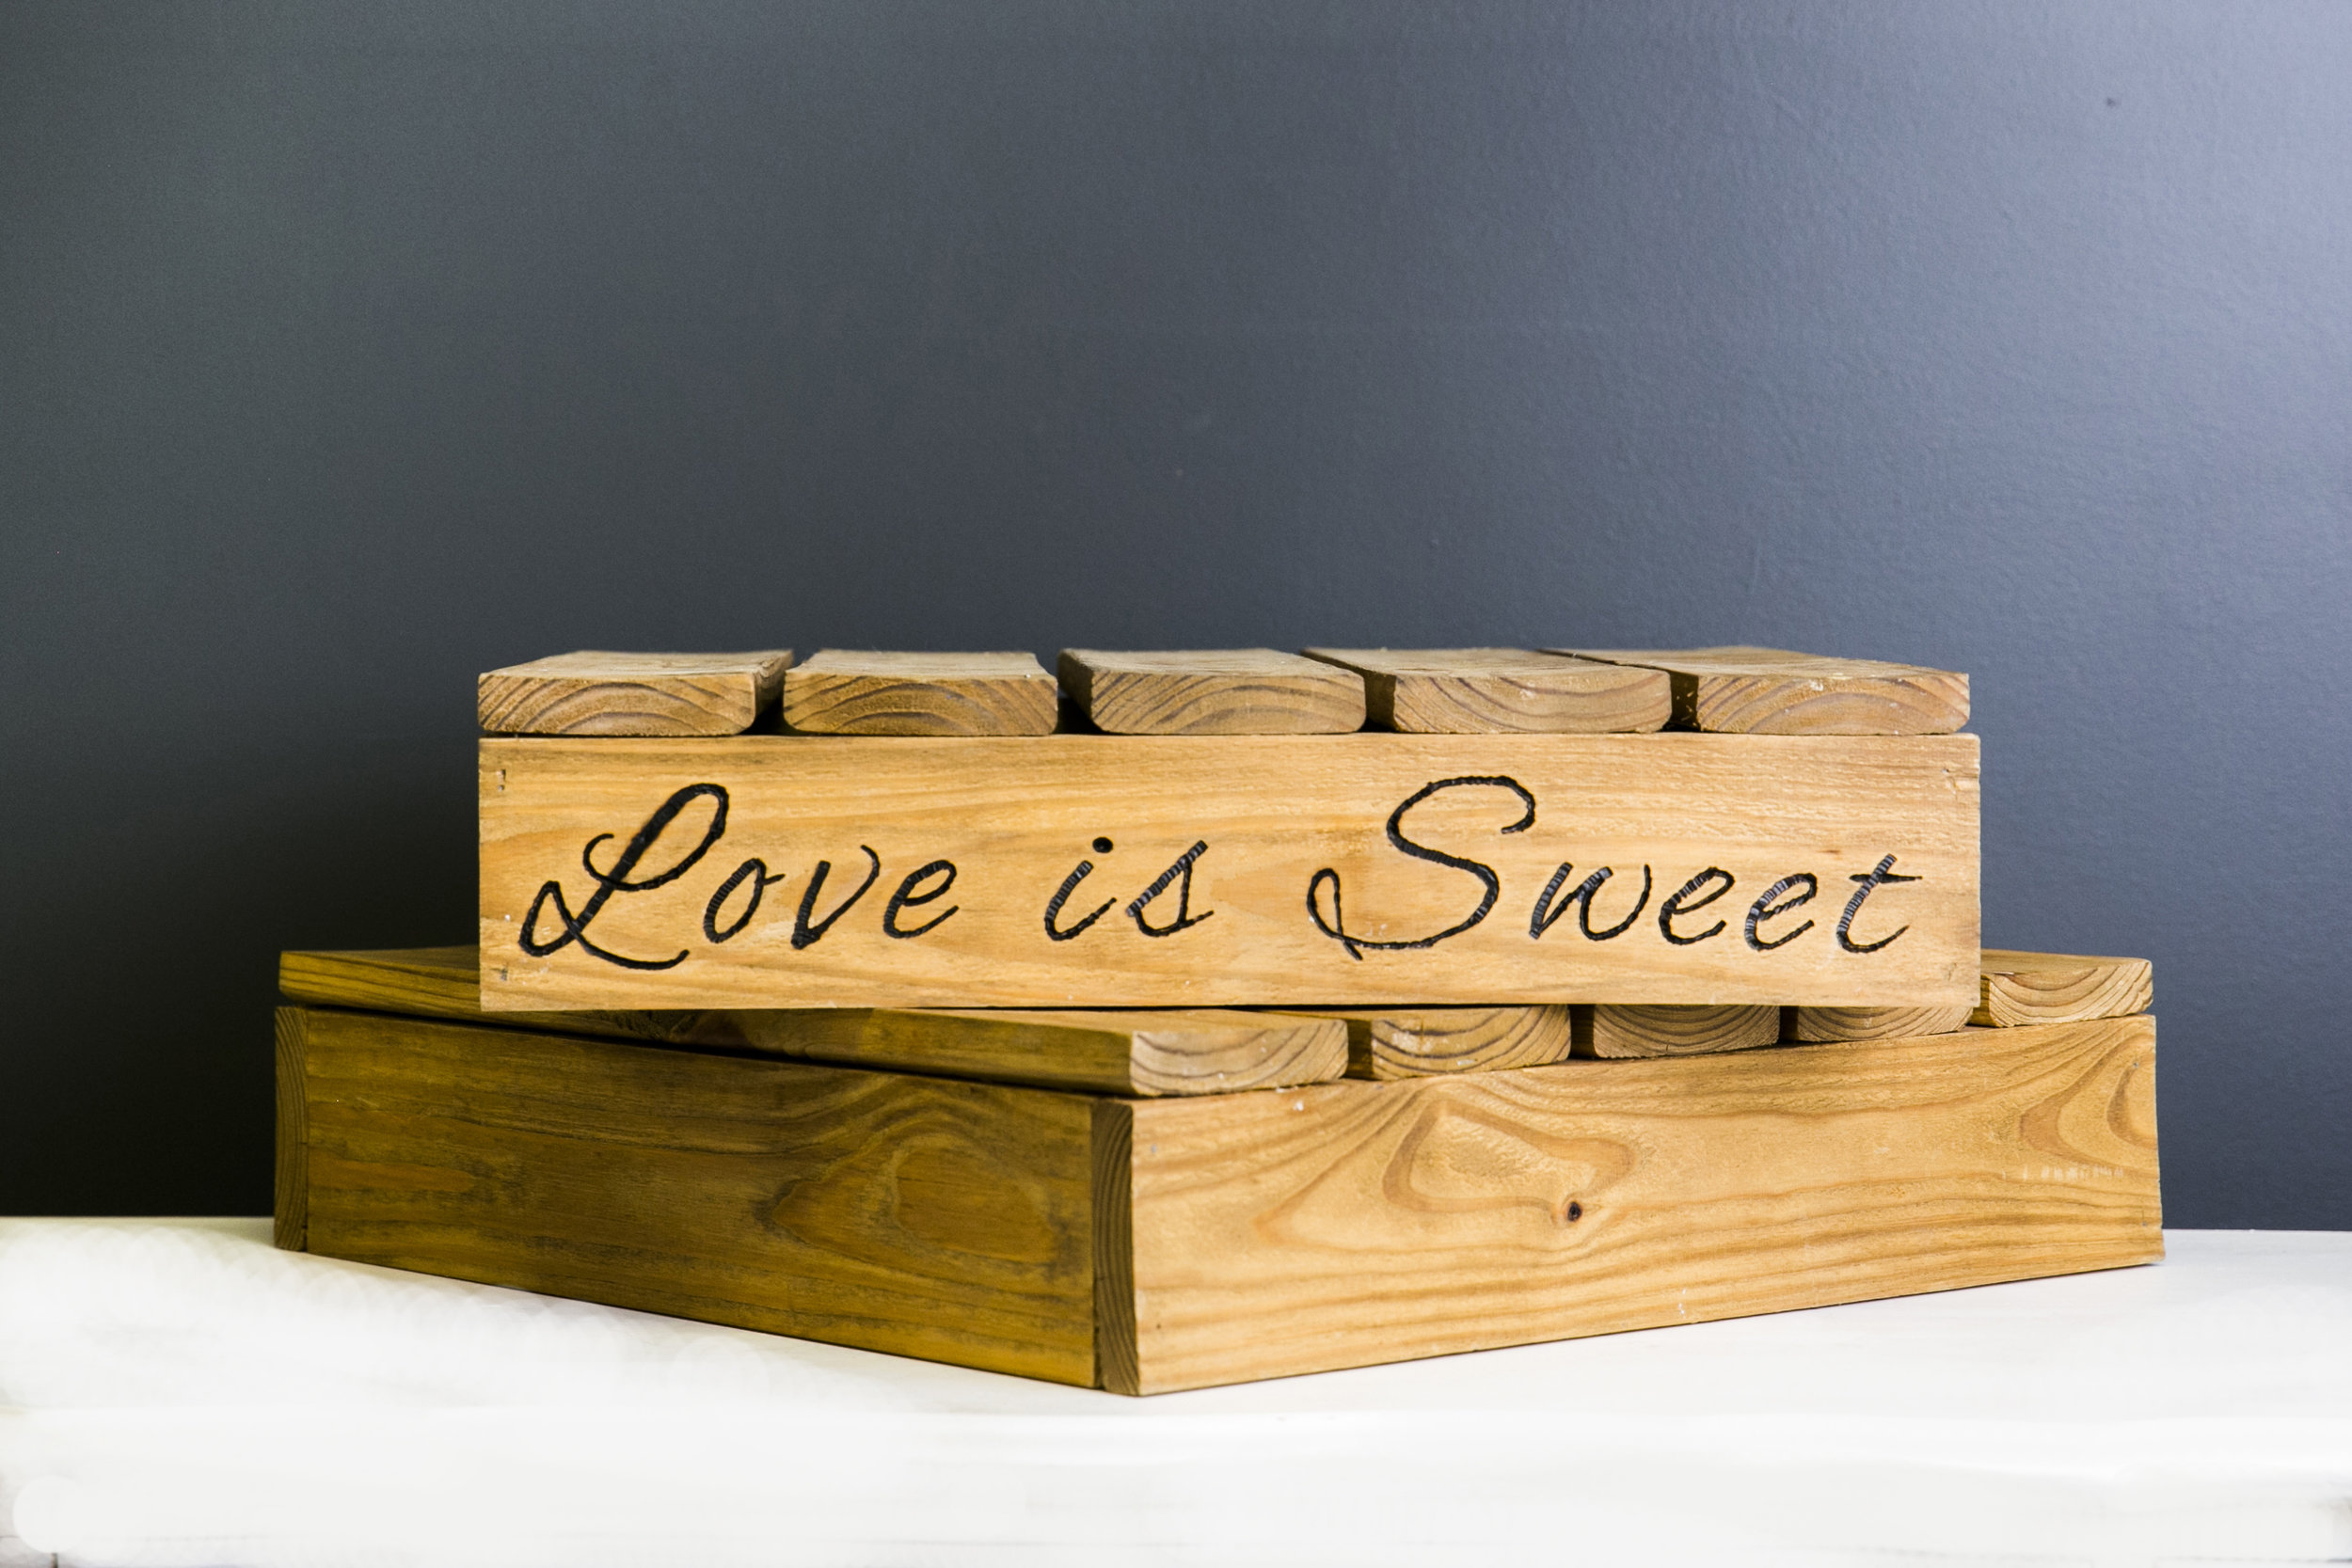 Love is Sweet Cake Dessert or Cake Pallet Assortment - Wood